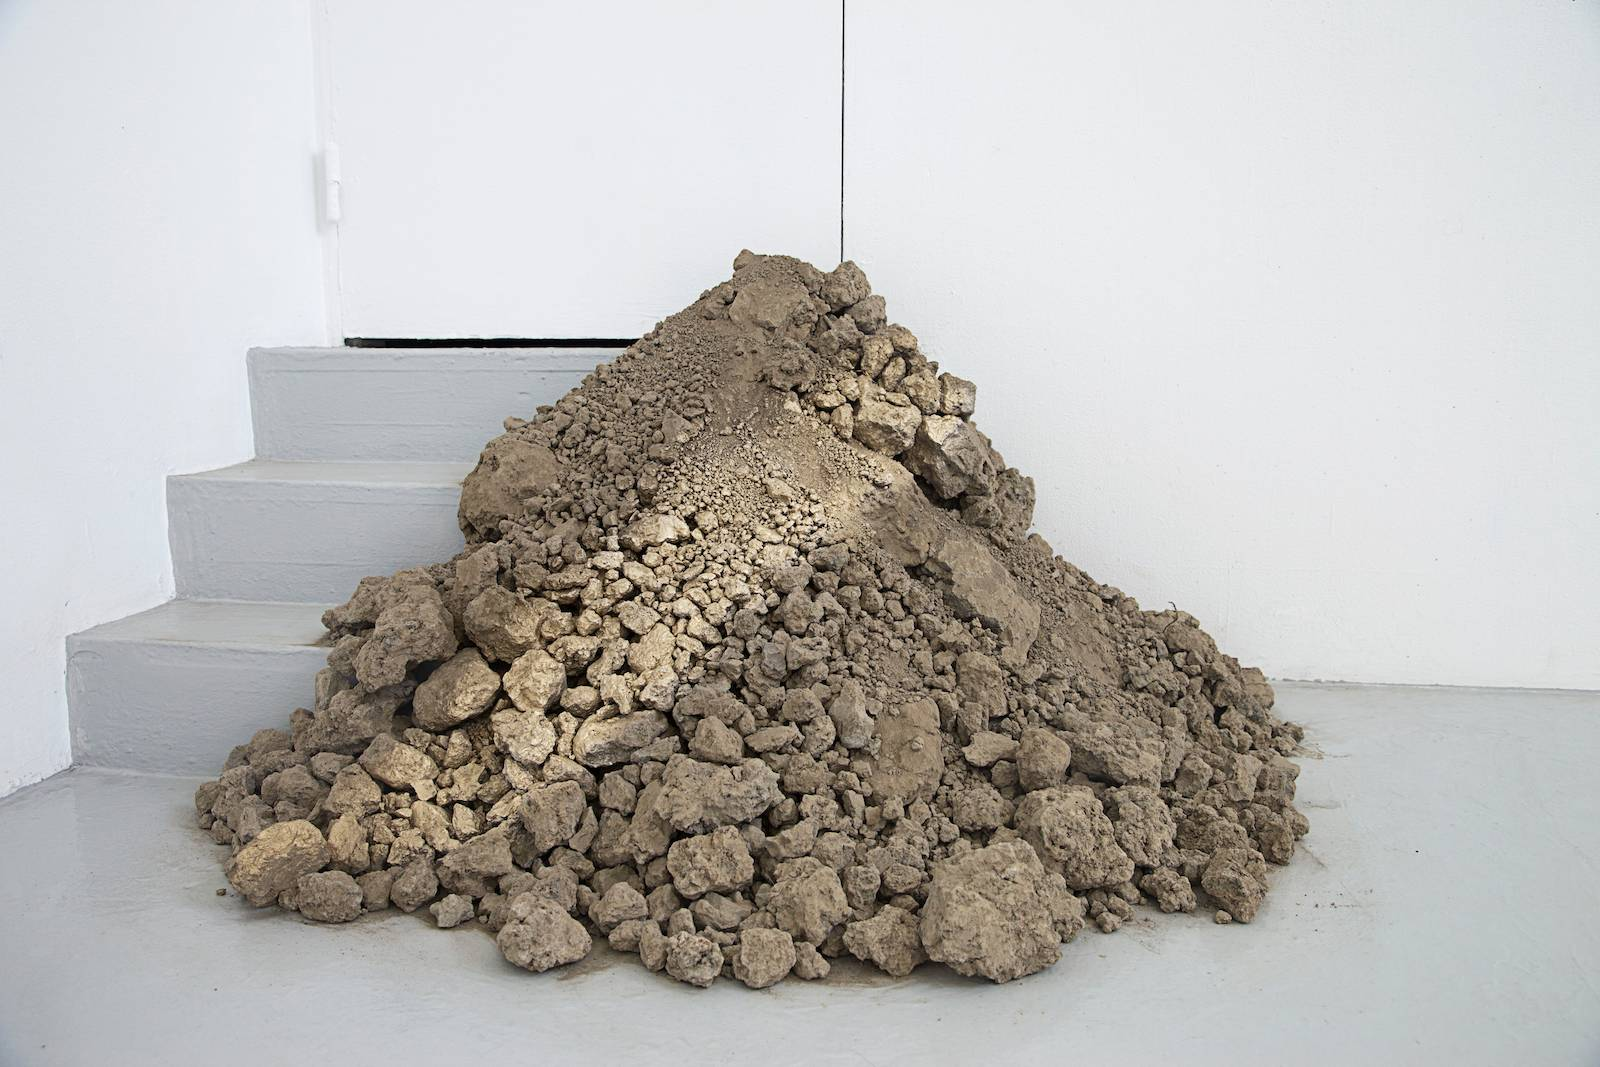 Gravel and pebbles, 2014. Installation view, The body does not forget, Galleri Mejan, Stockholm, 2014